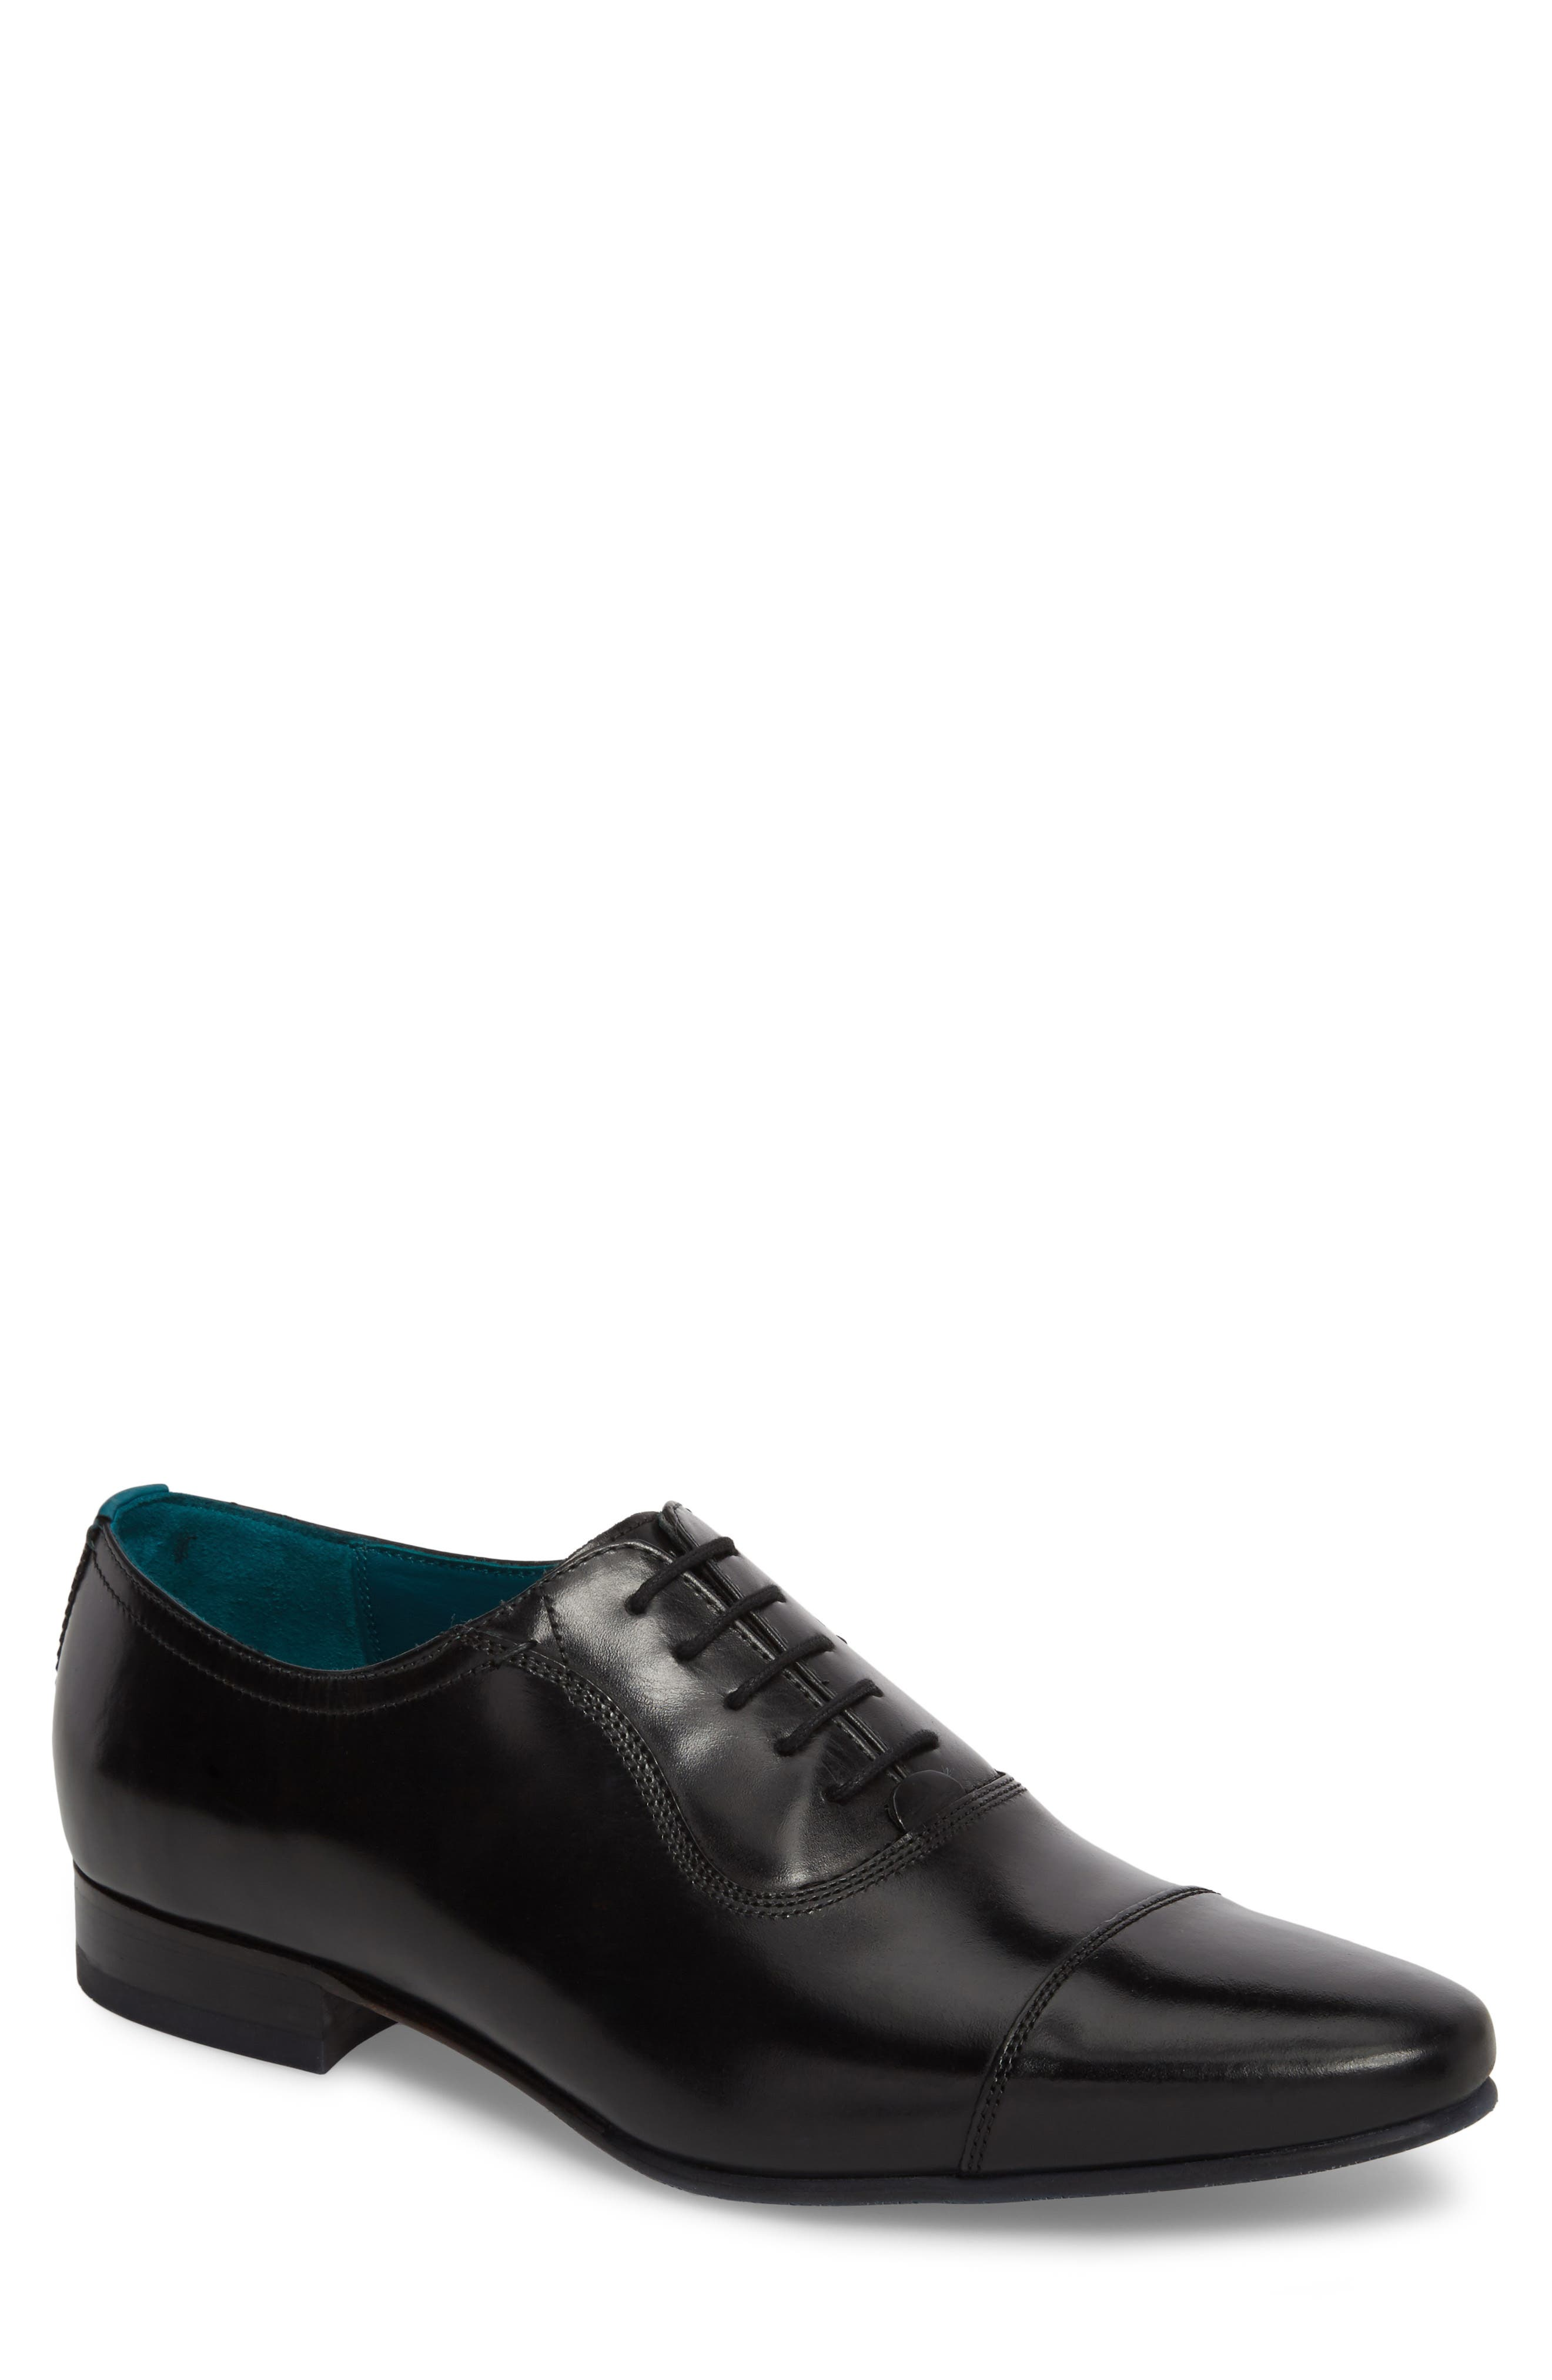 TED BAKER LONDON Karney Cap Toe Oxford, Main, color, BLACK LEATHER